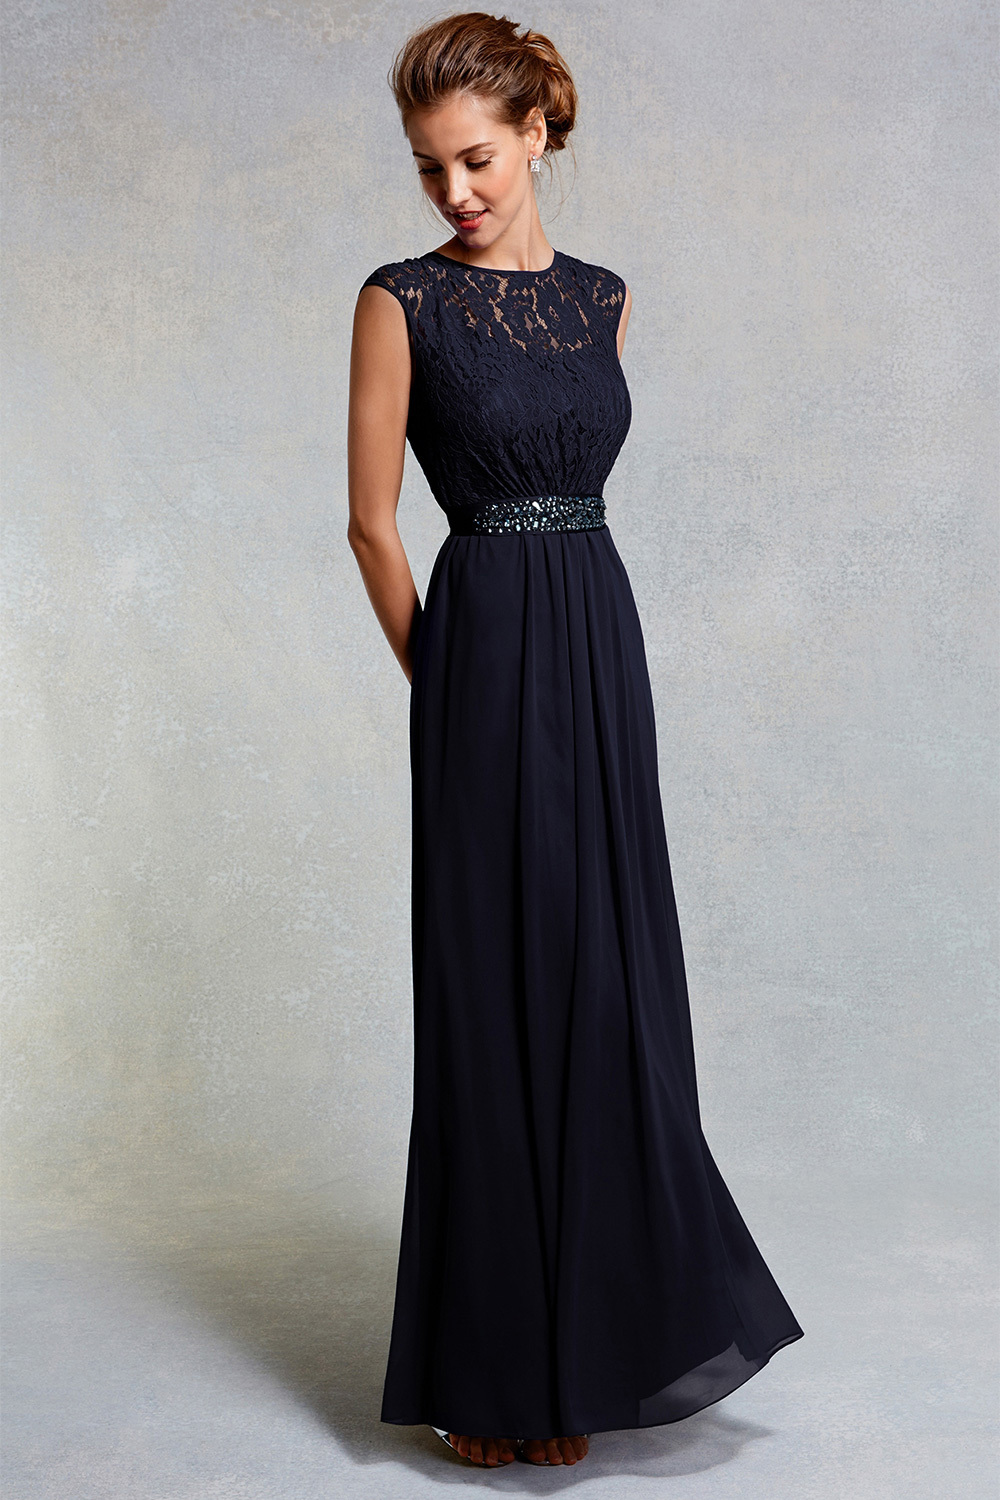 Lori Lee Lace Maxi Dress Sl - sleeve style: capped; pattern: plain; style: maxi dress; bust detail: sheer at bust; waist detail: belted waist/tie at waist/drawstring; predominant colour: navy; occasions: evening; length: floor length; fit: body skimming; fibres: polyester/polyamide - 100%; neckline: crew; sleeve length: short sleeve; texture group: lace; pattern type: fabric; embellishment: lace; season: s/s 2016